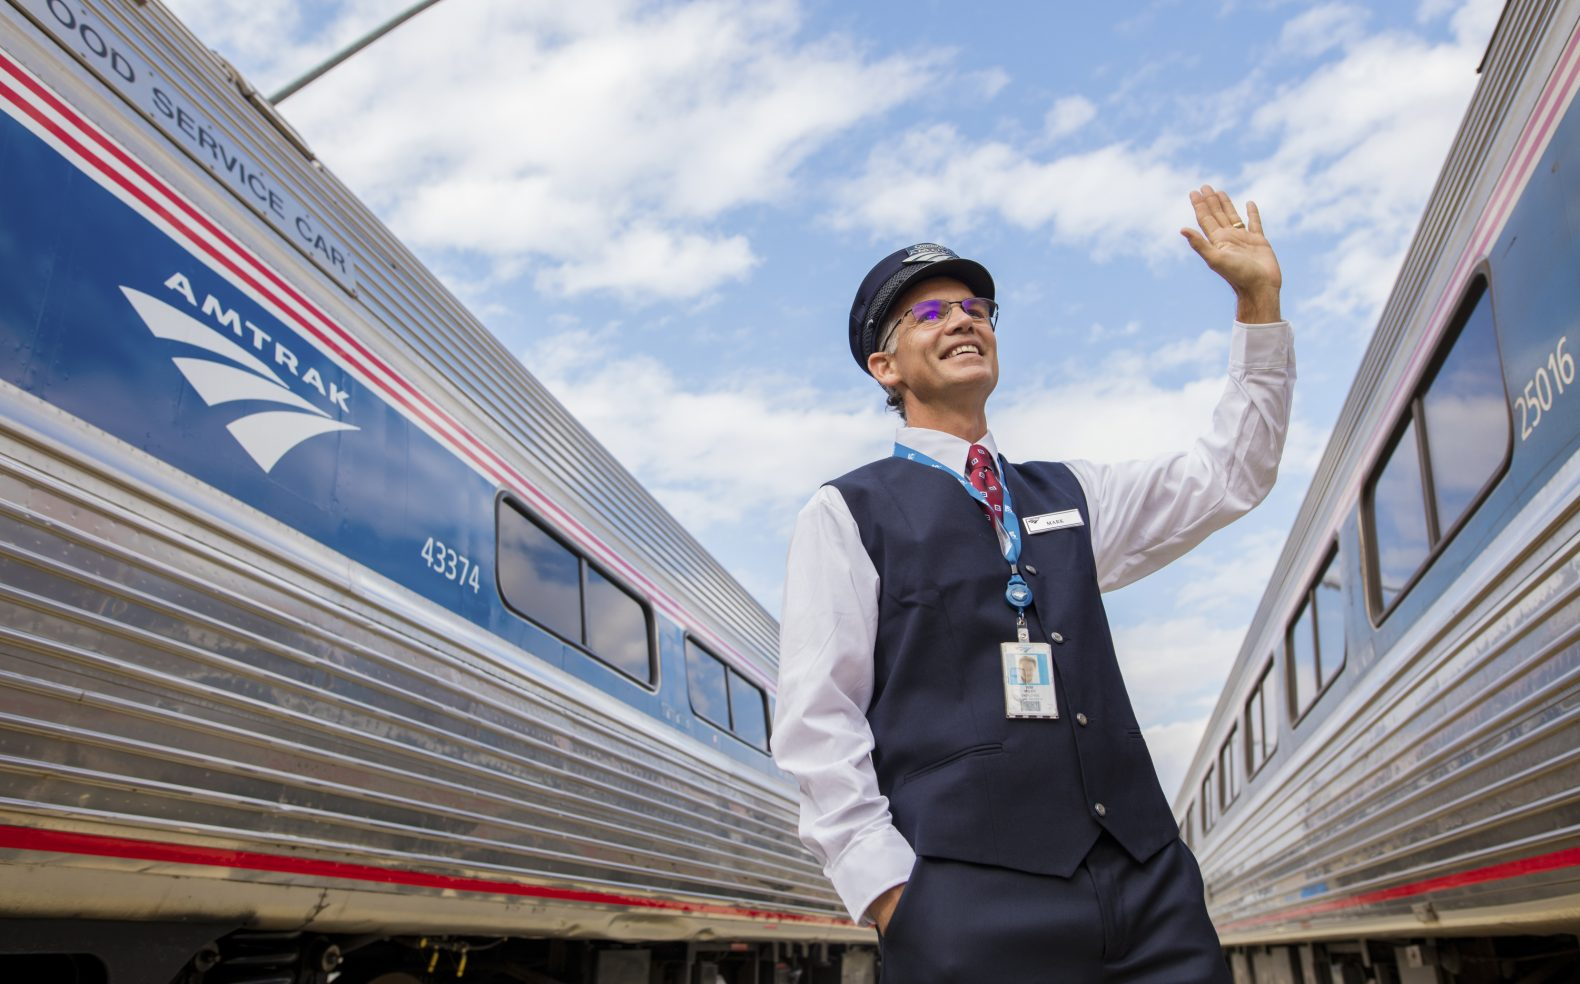 Professional photograph of an Amtrak train employee on a platform between two trains waving as a train passes by.